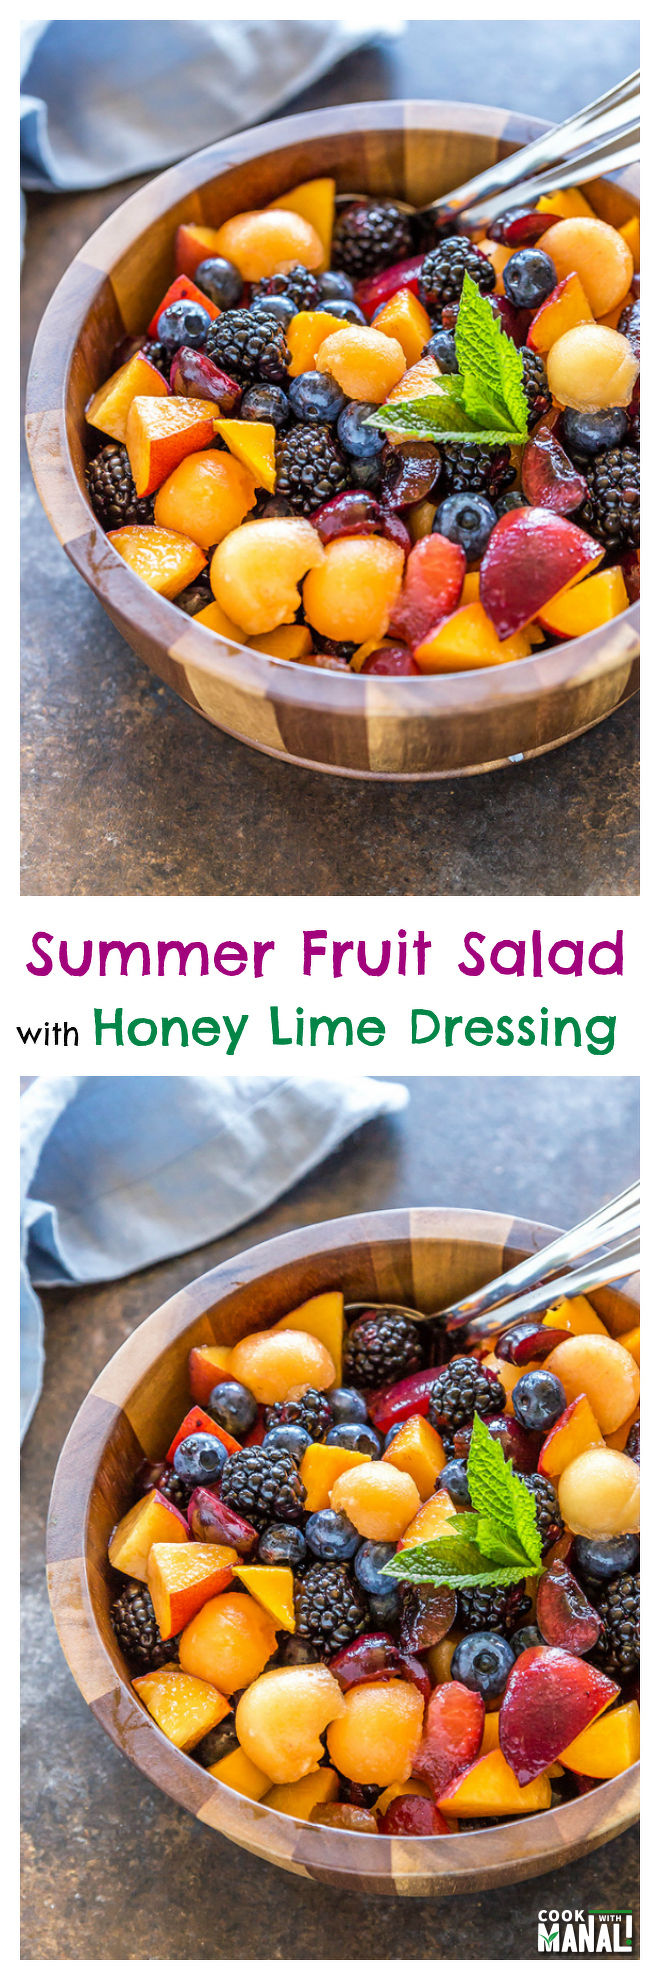 Summer Fruit Salad with Honey Lime Dressing - Cook With Manali